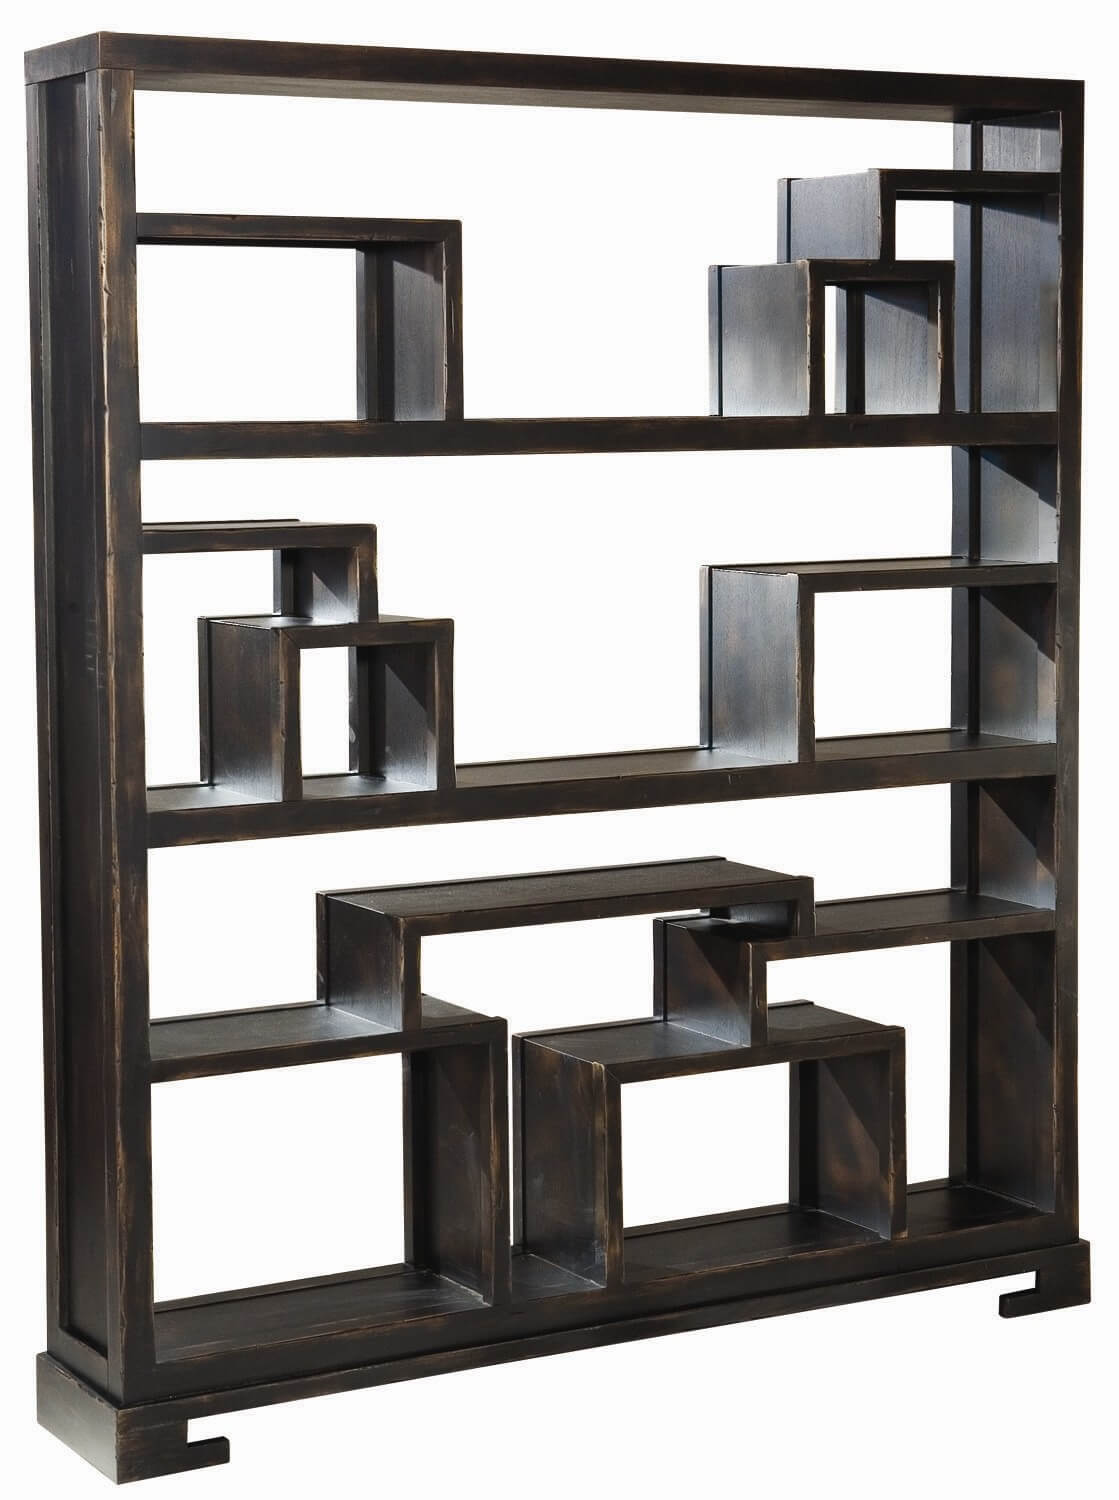 This is an intricate 12-cube backless shelf with many sections - each a different shape and size.